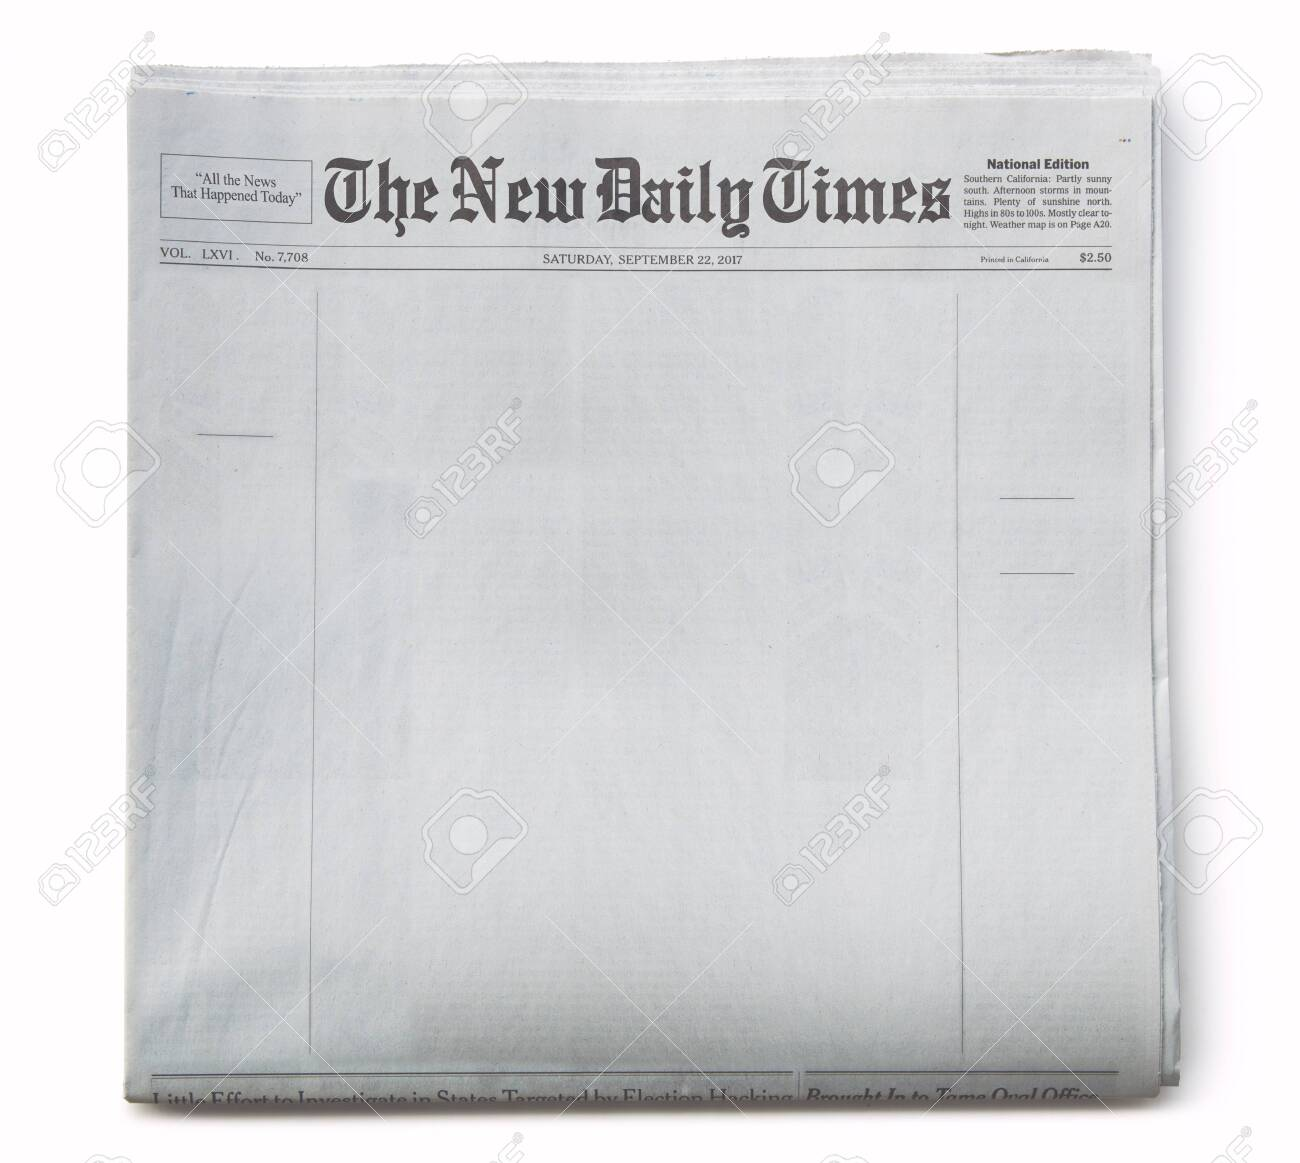 Fake Newspaper Front Page Blank with Title - 120354918